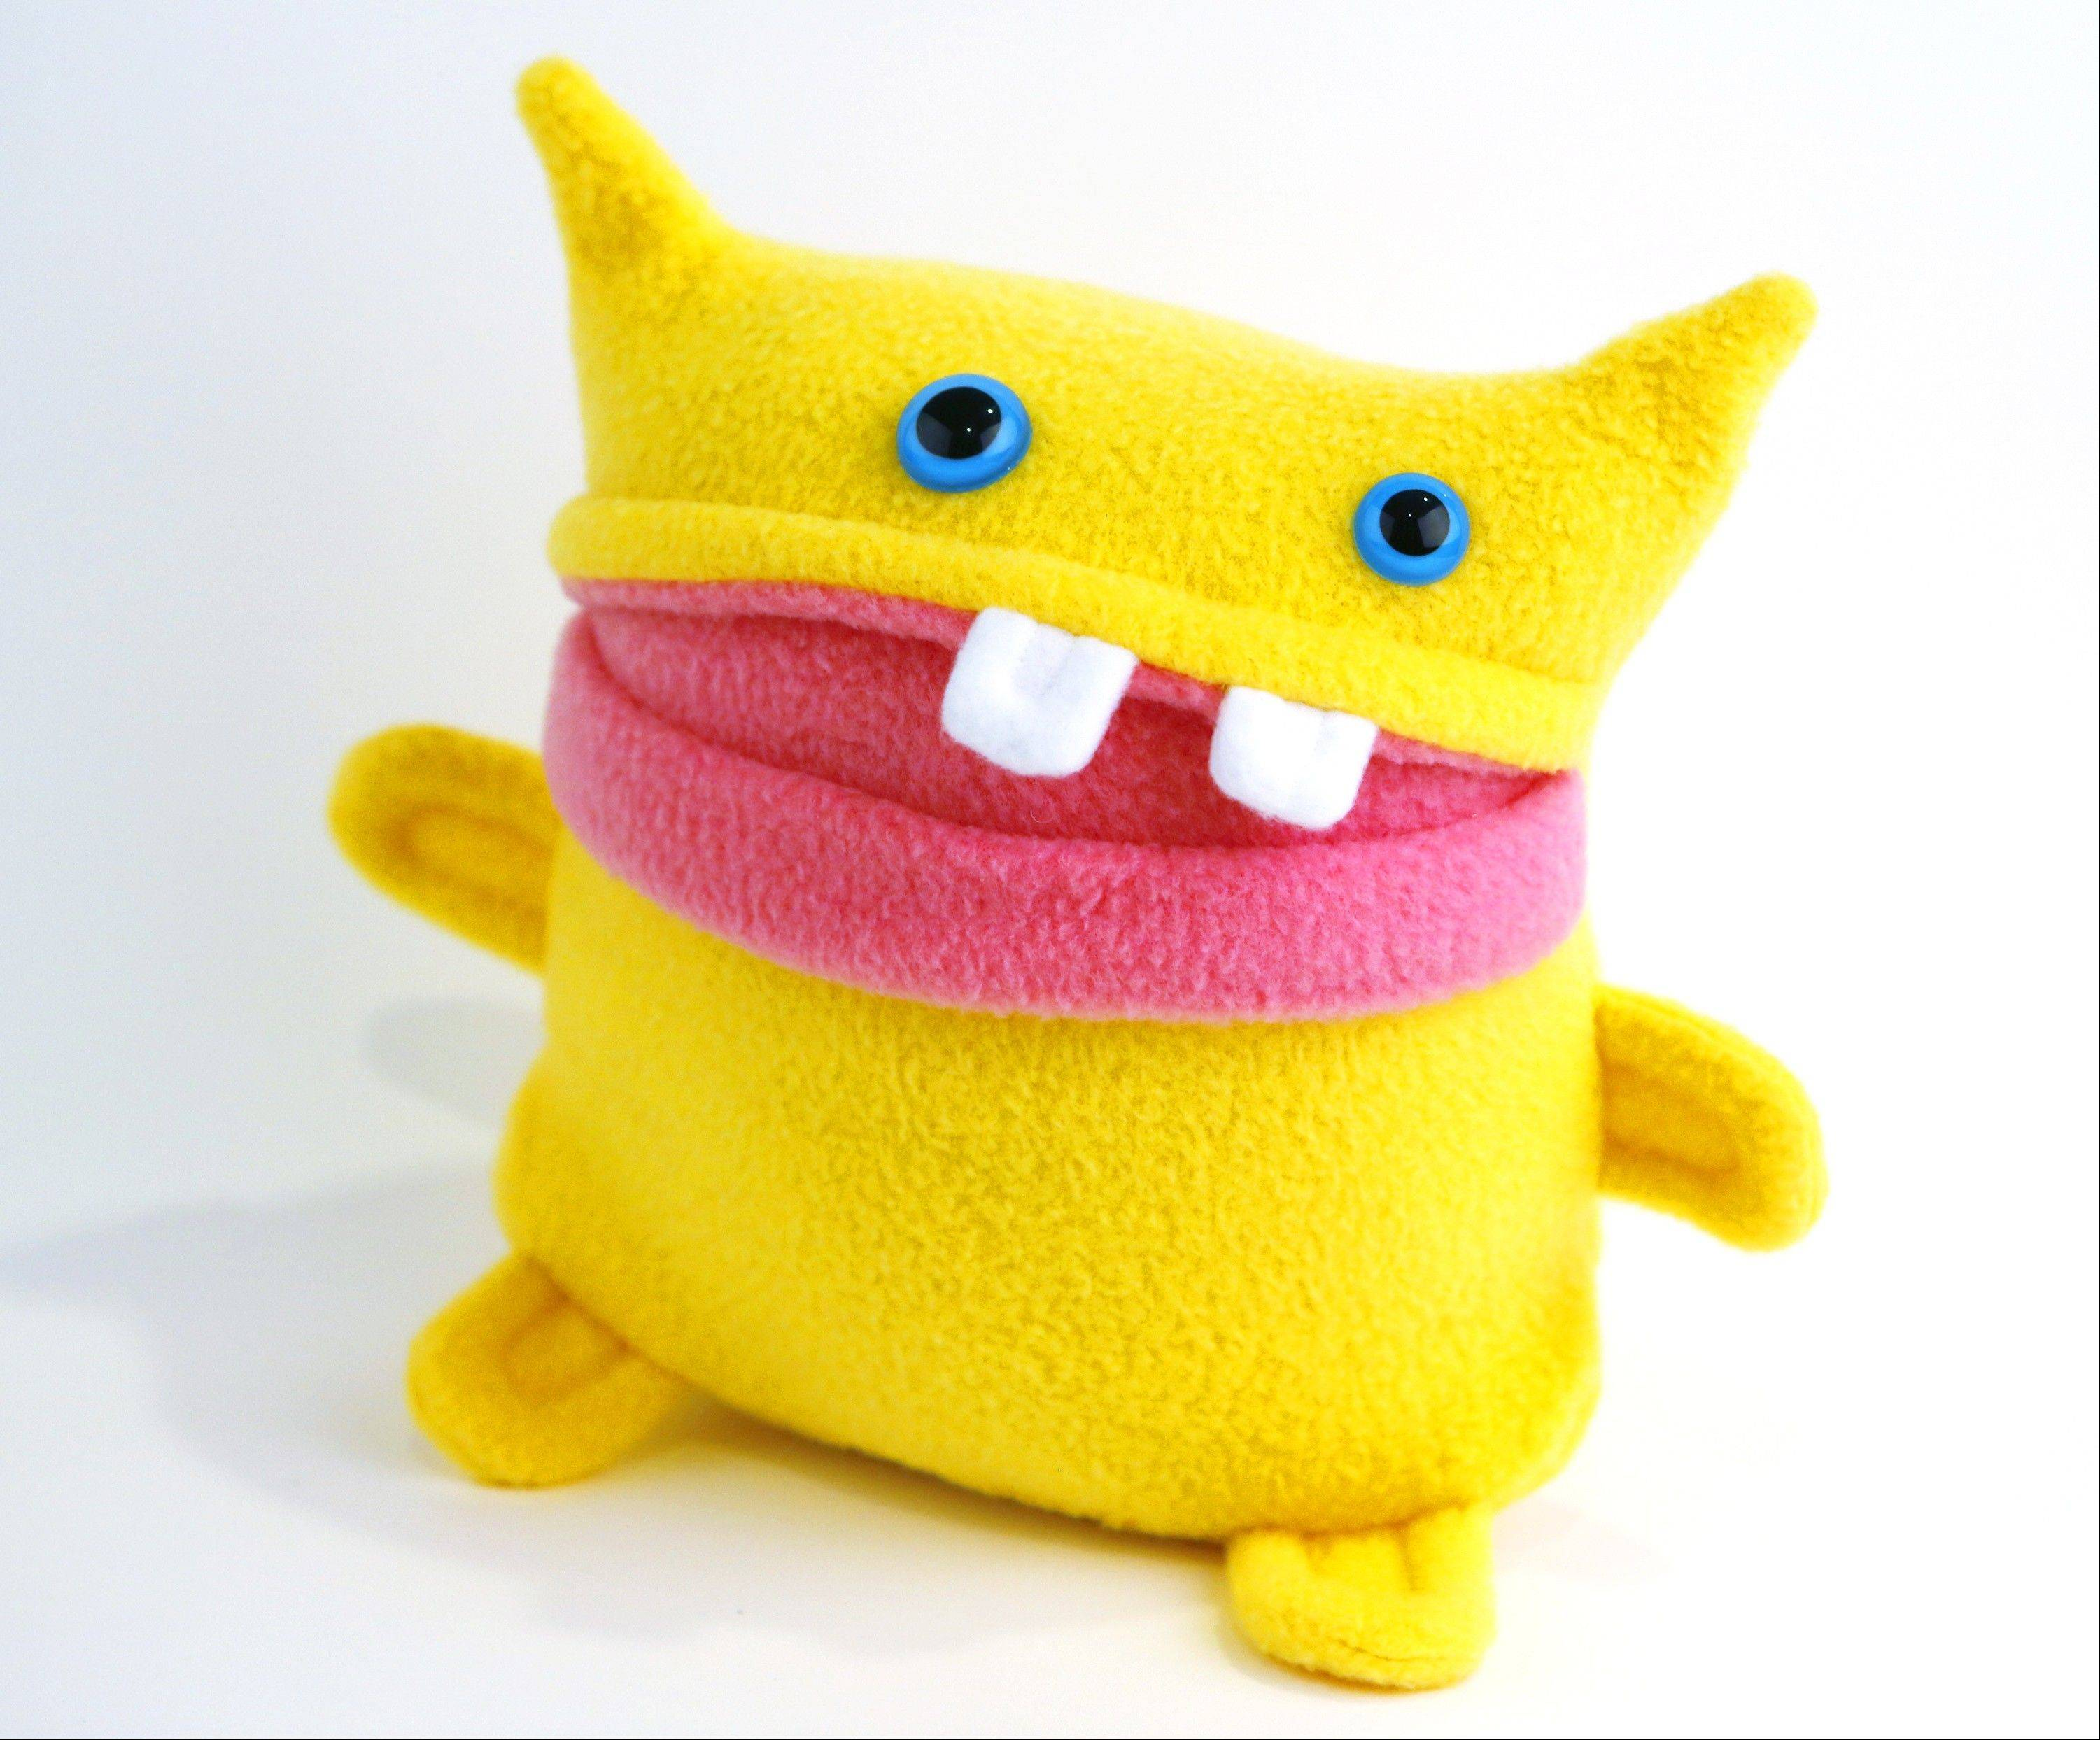 A monster doll called Sunny is made by the Monster to Love company started by the Tollison family in Fort Collins, Colo.